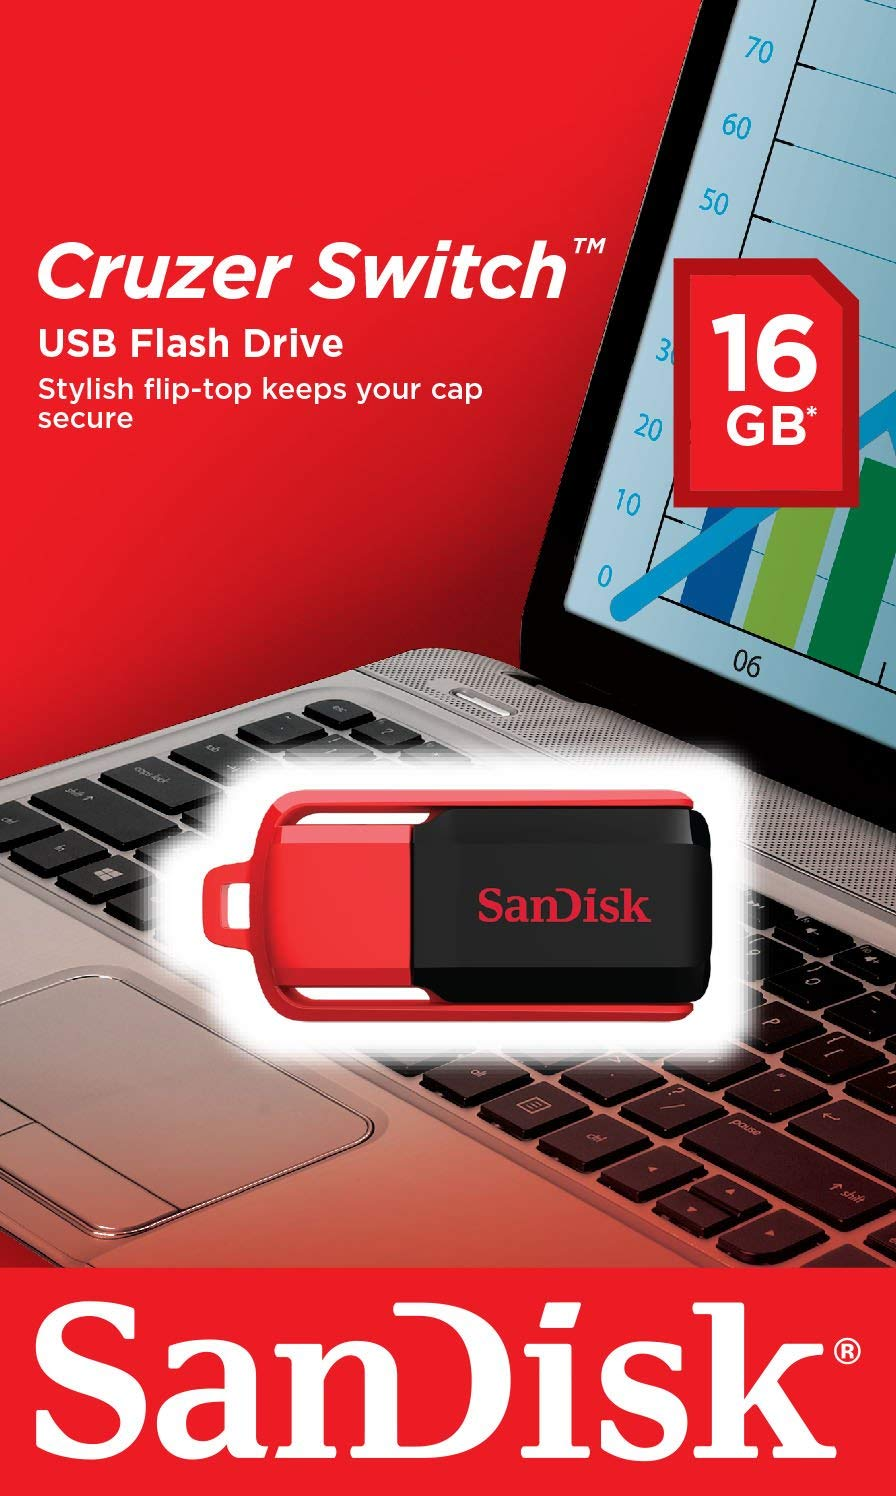 SanDisk 4GB Cruzer Switch USB Flash Drive